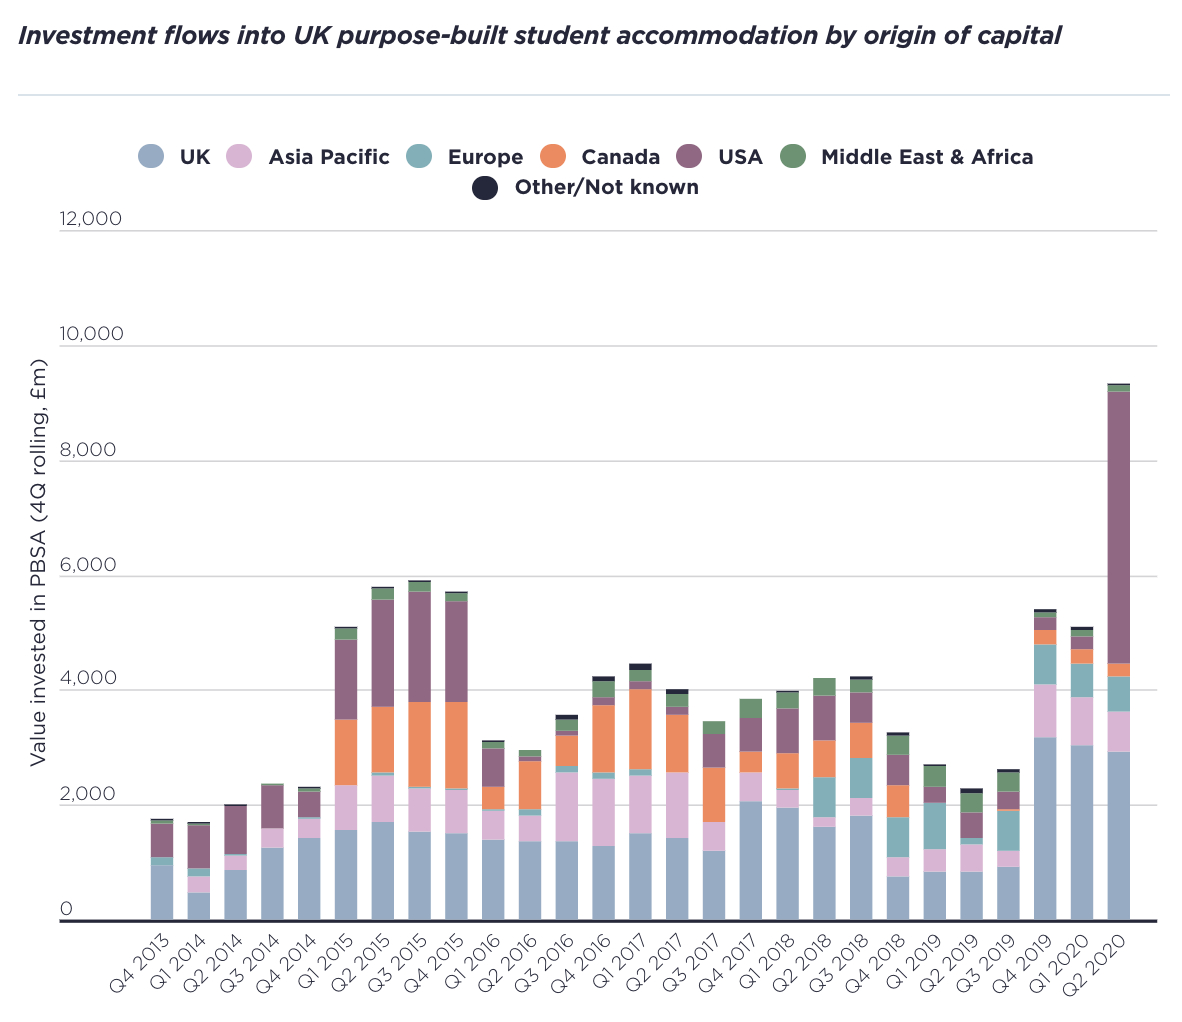 Investment flows into UK purpose-built student accommodation by origin of capital